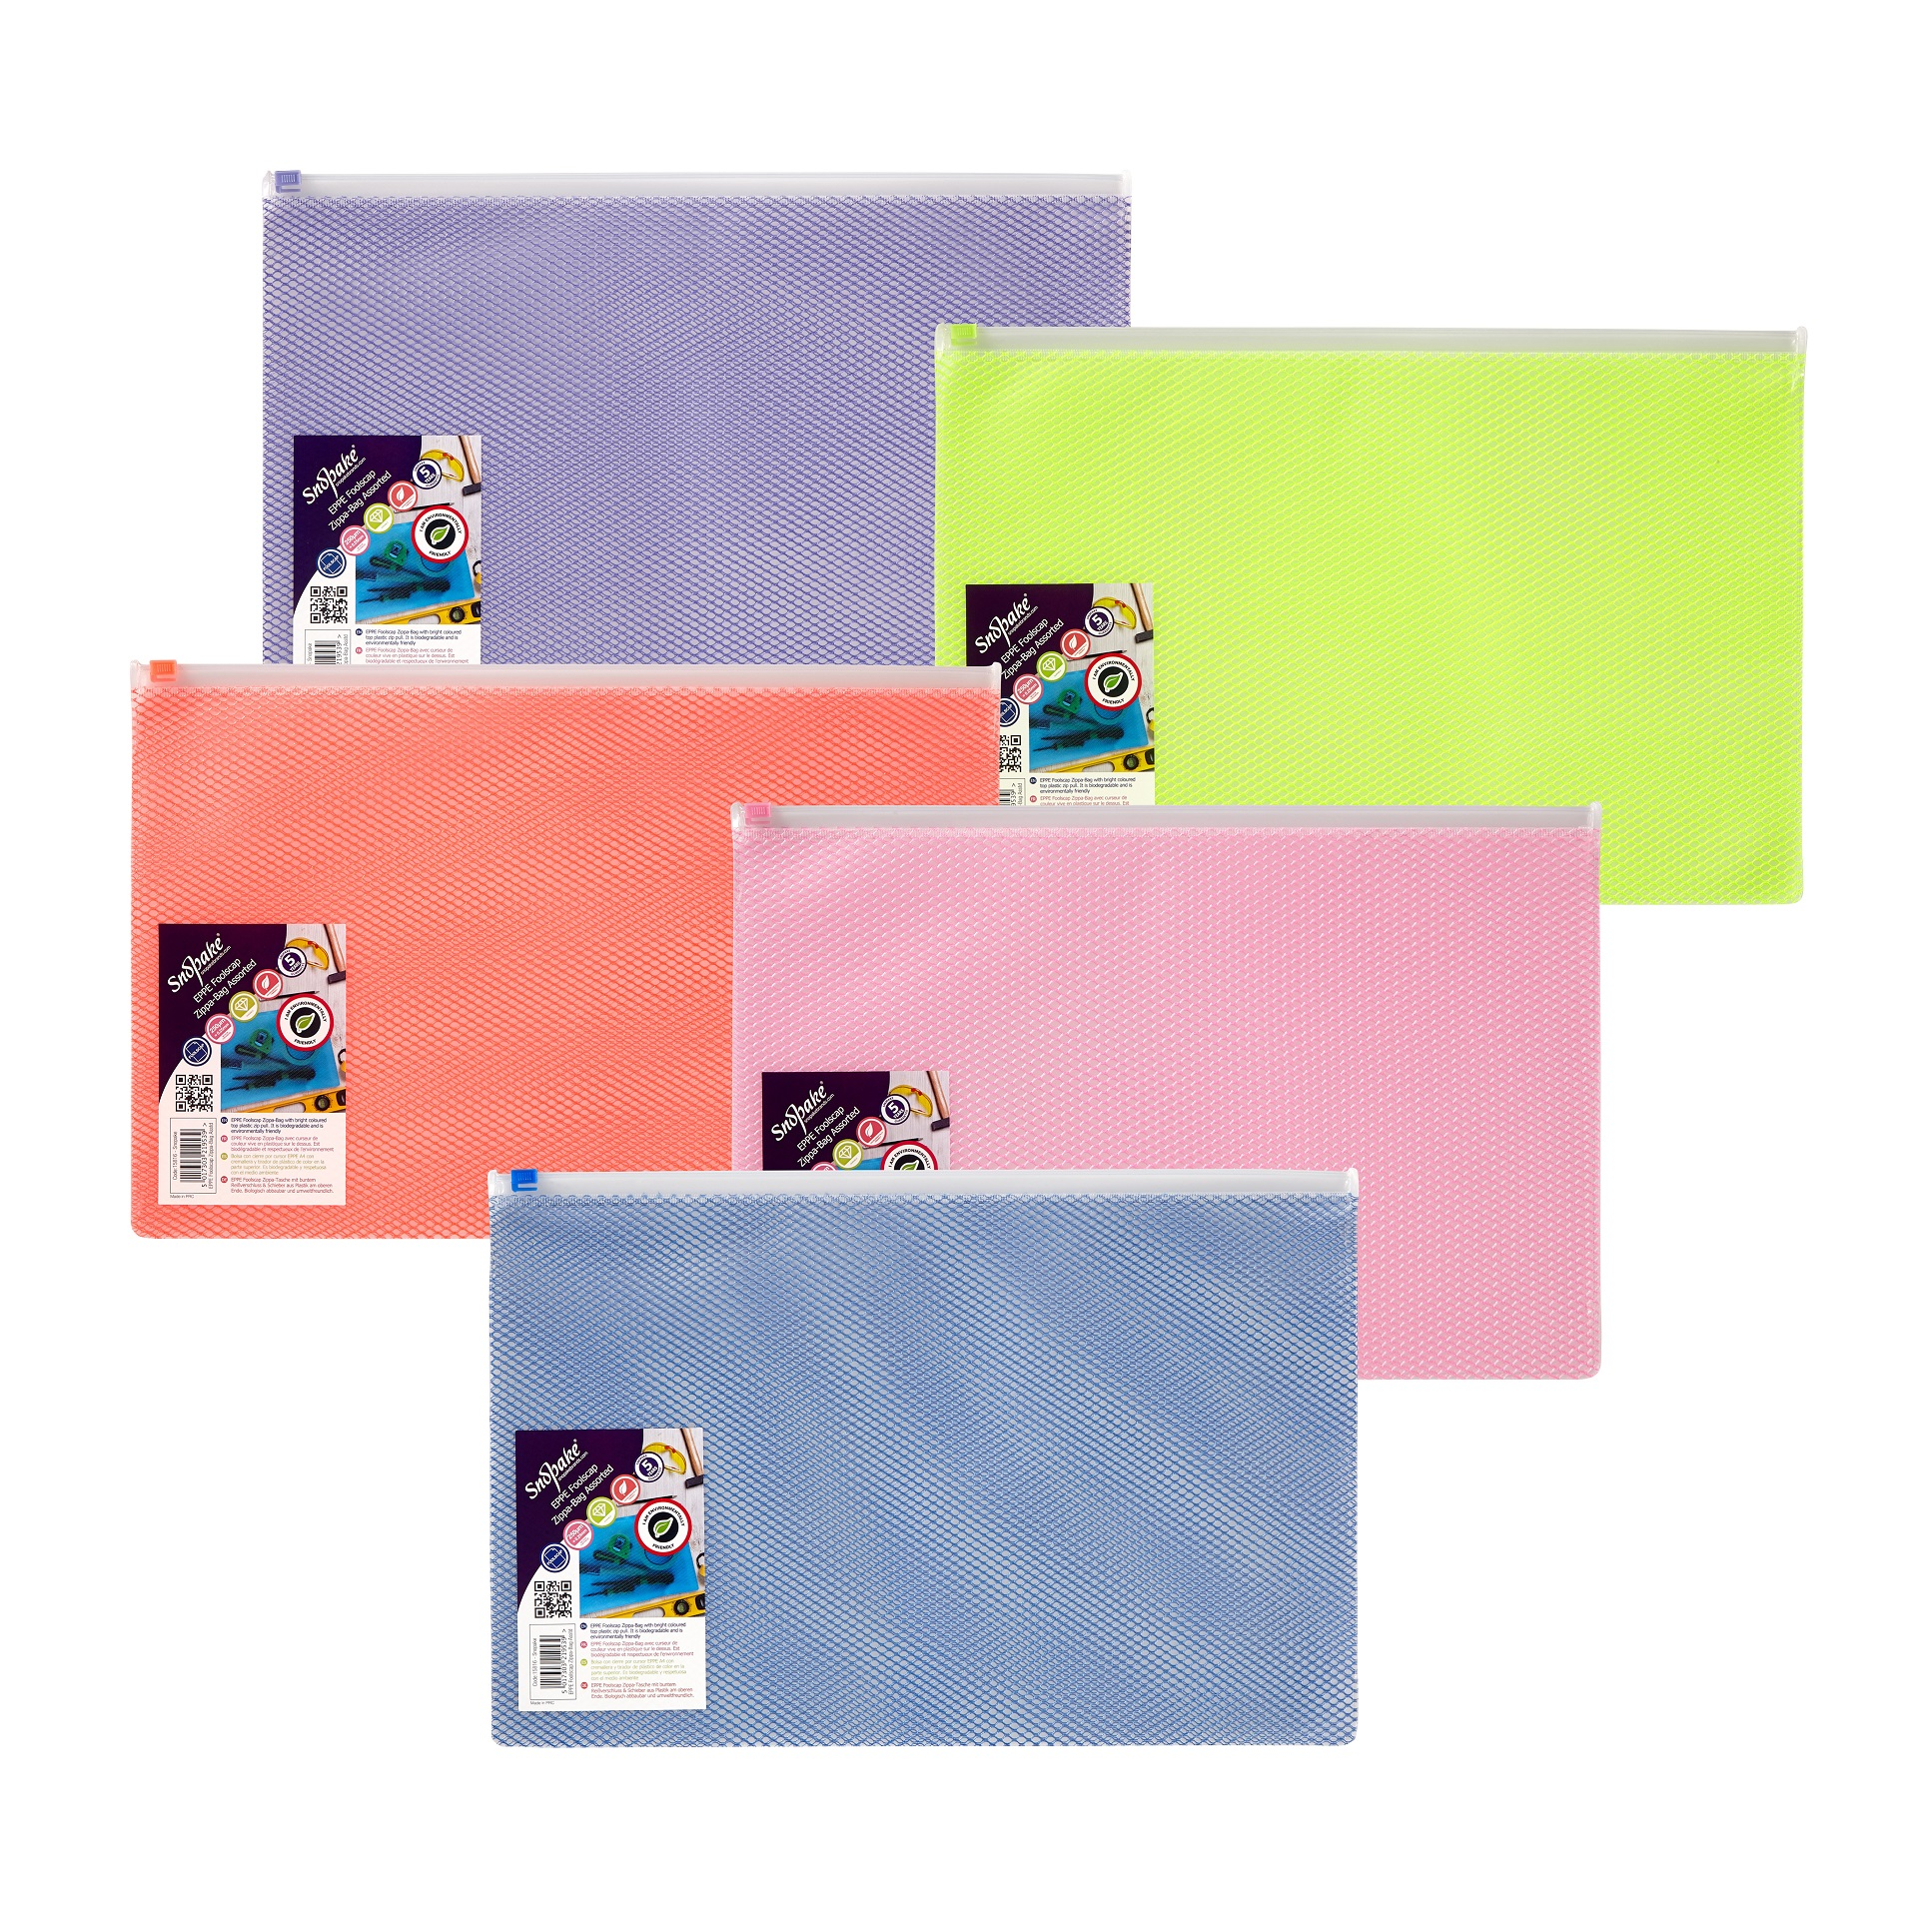 Zip Bags Snopake EPPE Zippa Bag Foolscap Assorted Pack 5